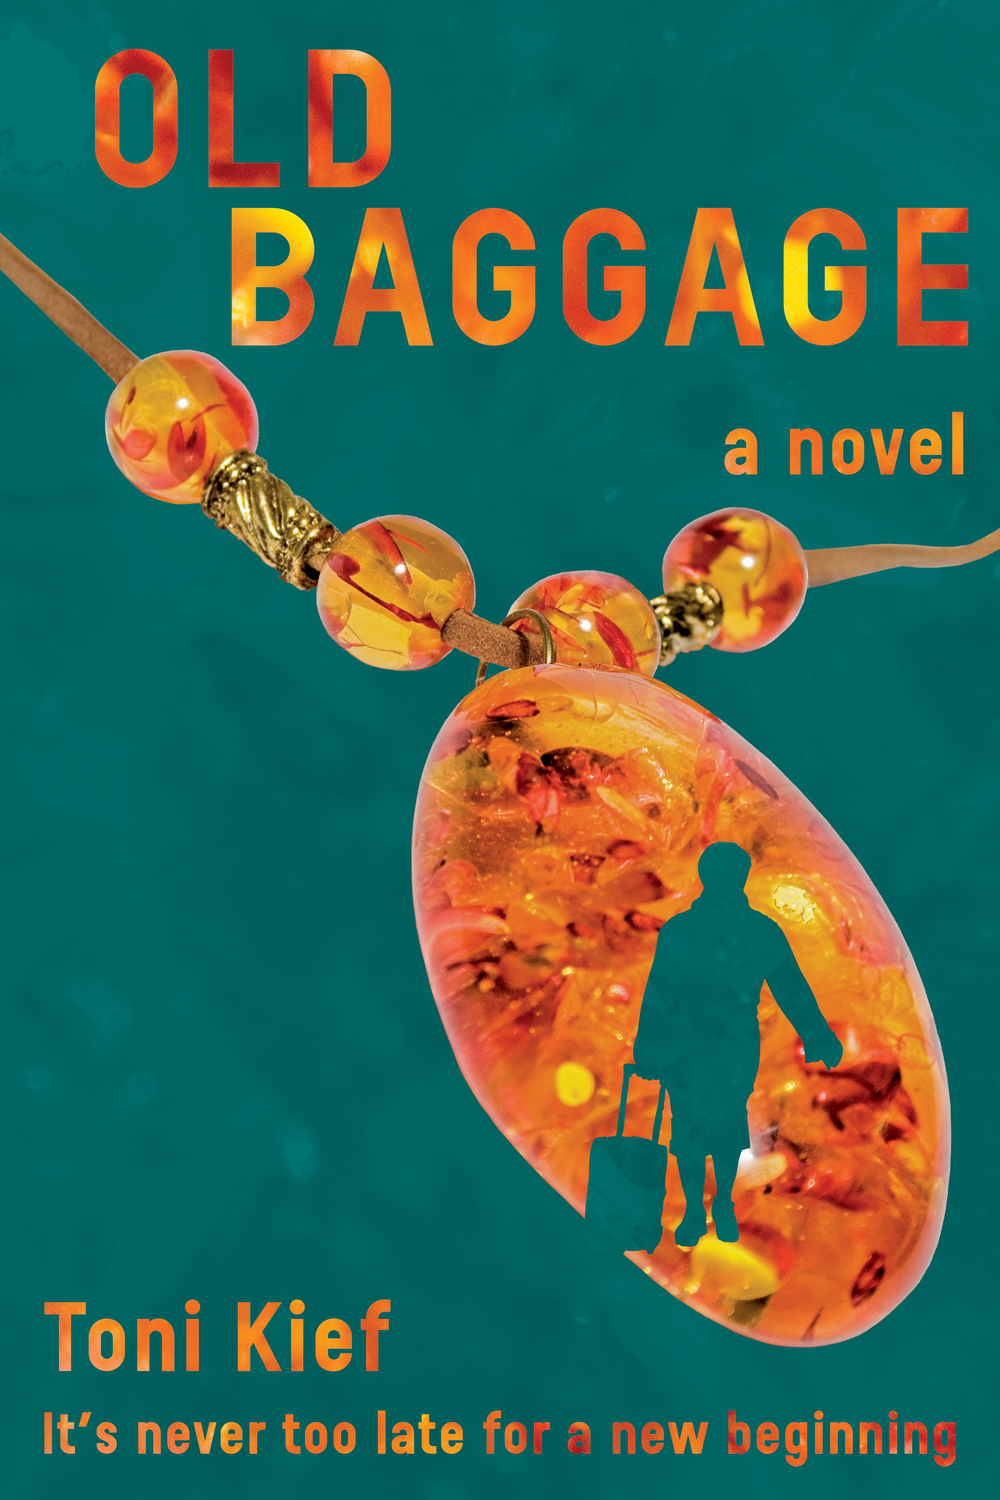 Book cover design: Old Baggage